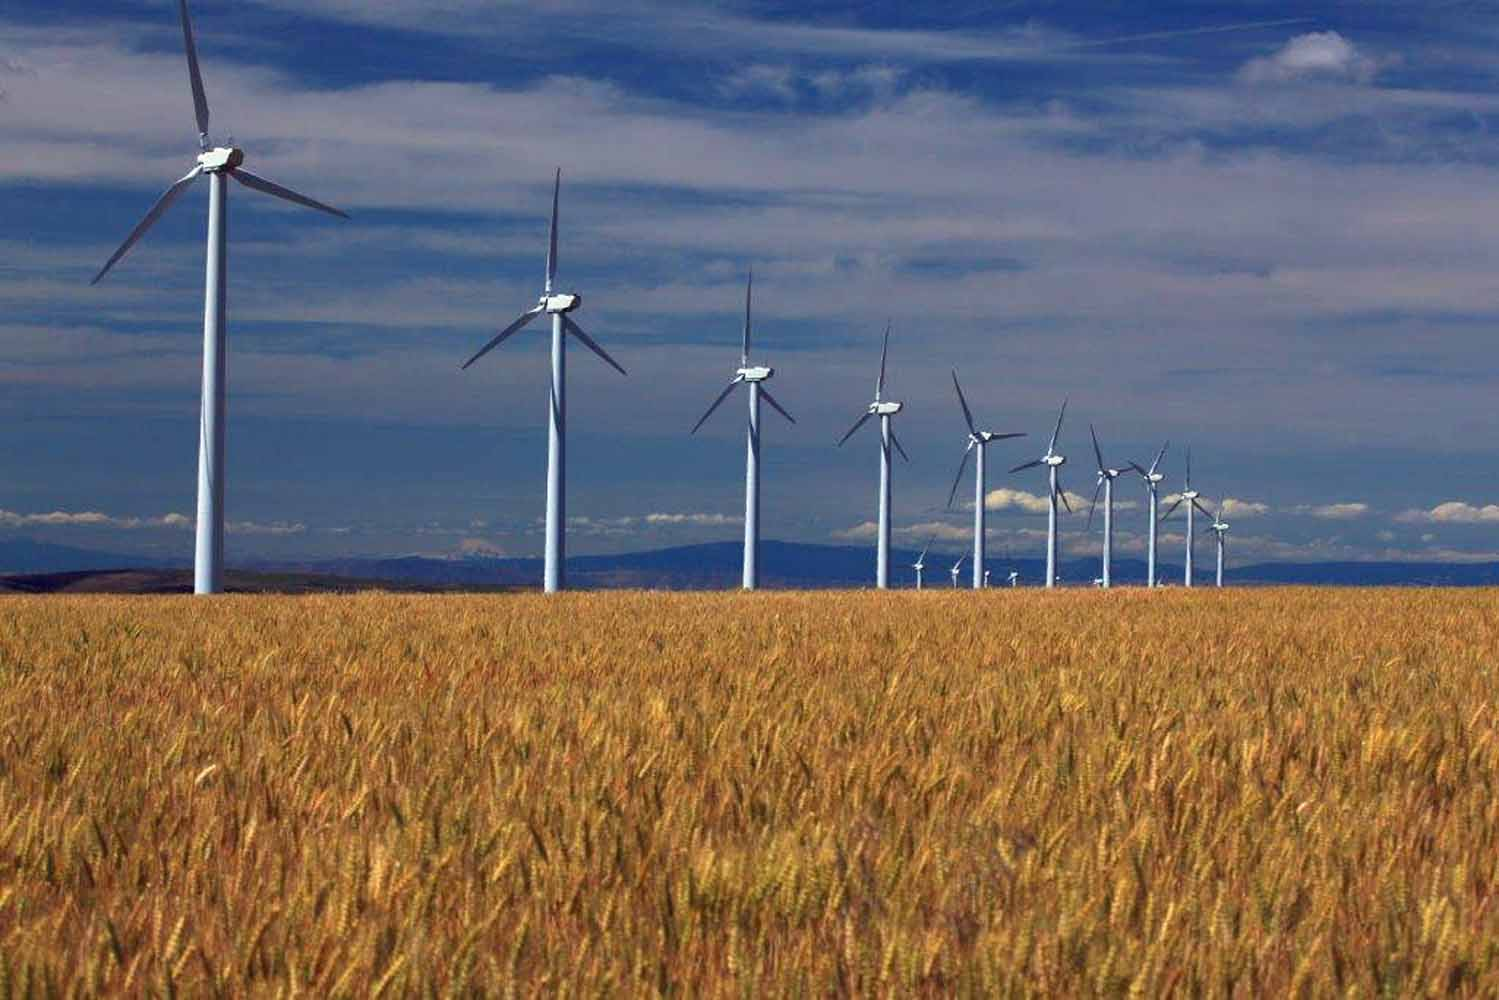 Gilliam County wheat fields and turbines